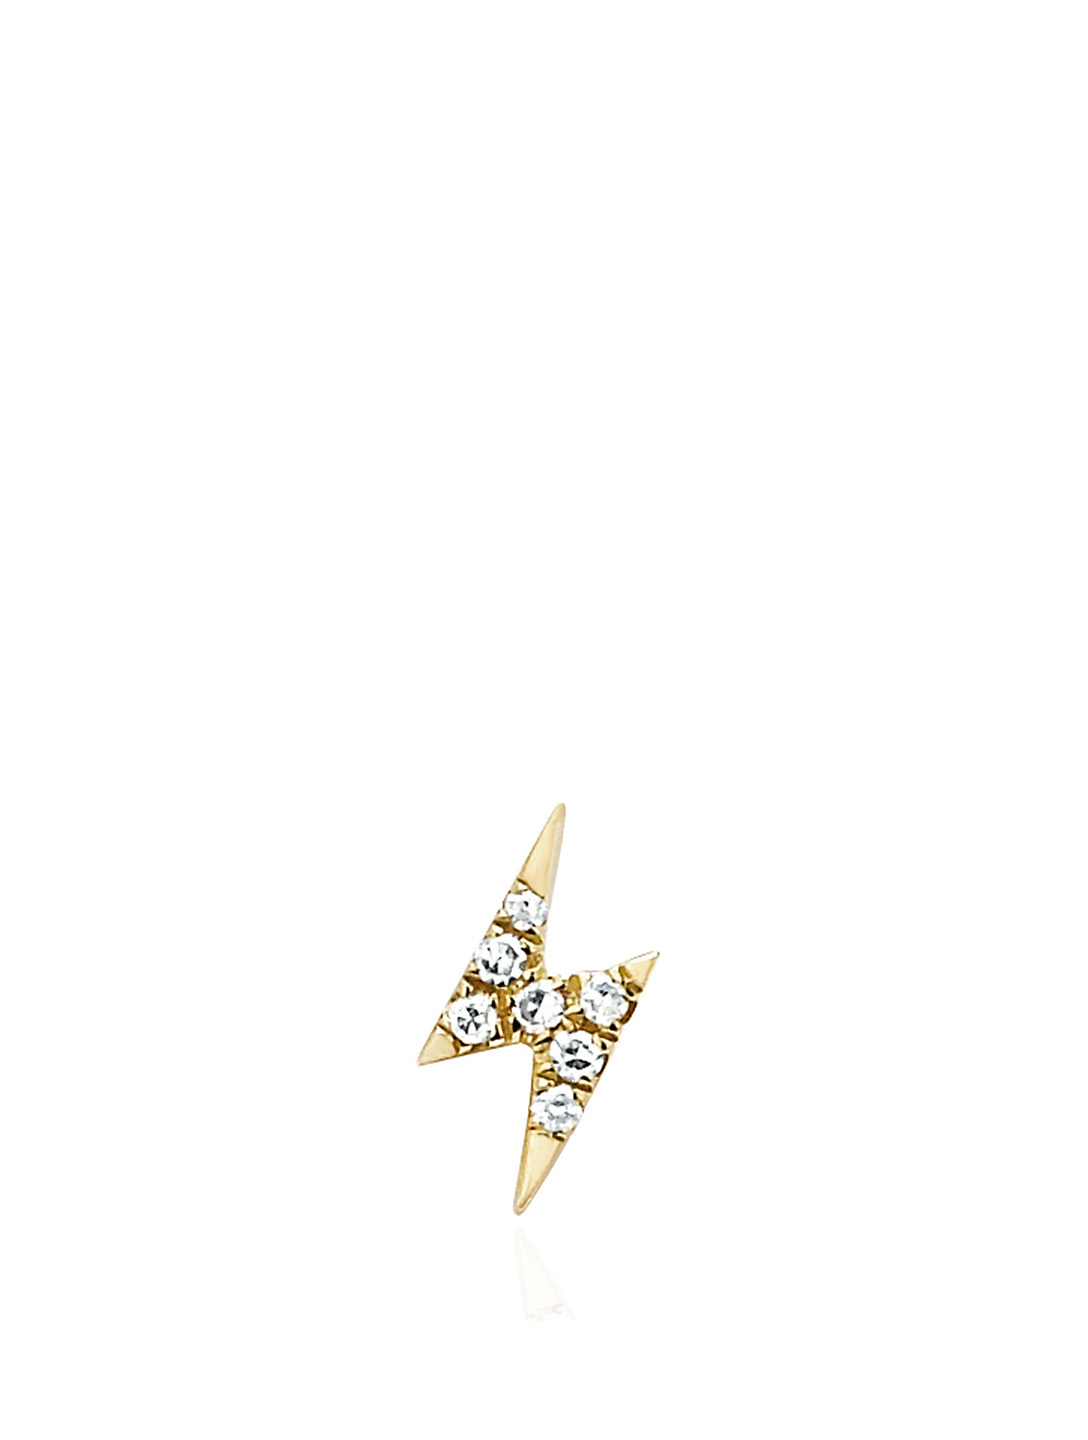 EF COLLECTION 14K Gold Lightning Bolt Stud Earring With Diamonds Women's Metallic